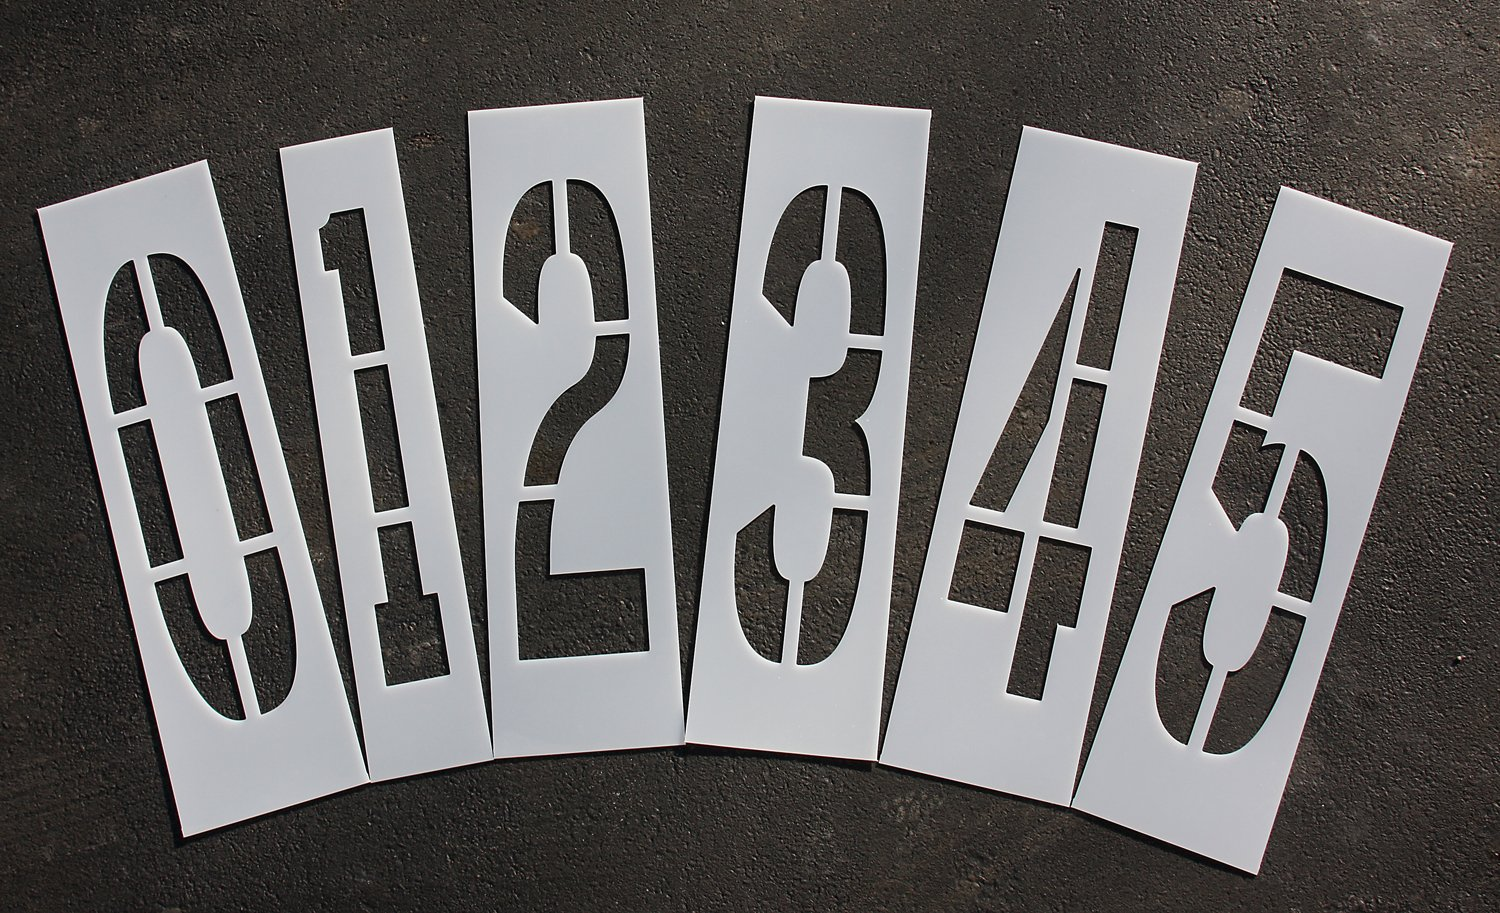 Parking Lot Pavement Stencils - 36 in - NUMBER KIT STENCIL SET - 1/16 Light-Duty - (12 Piece - (1) Number 0-9, and (2) blanks)